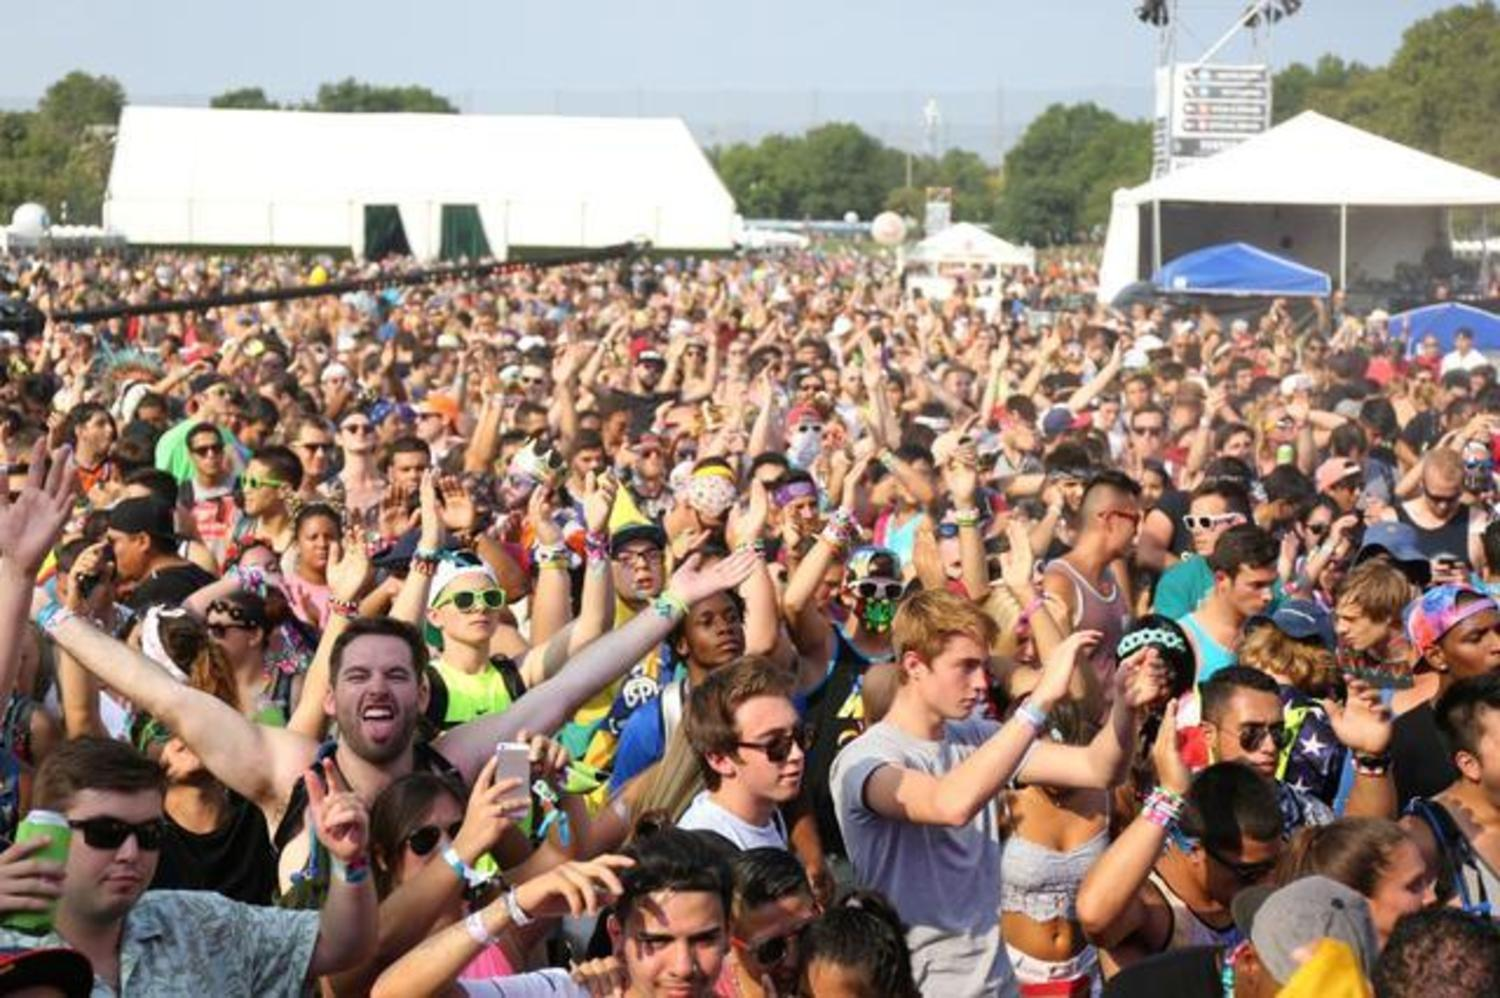 Photos, Videos: Good Vibes, Happy People At Electric Zoo